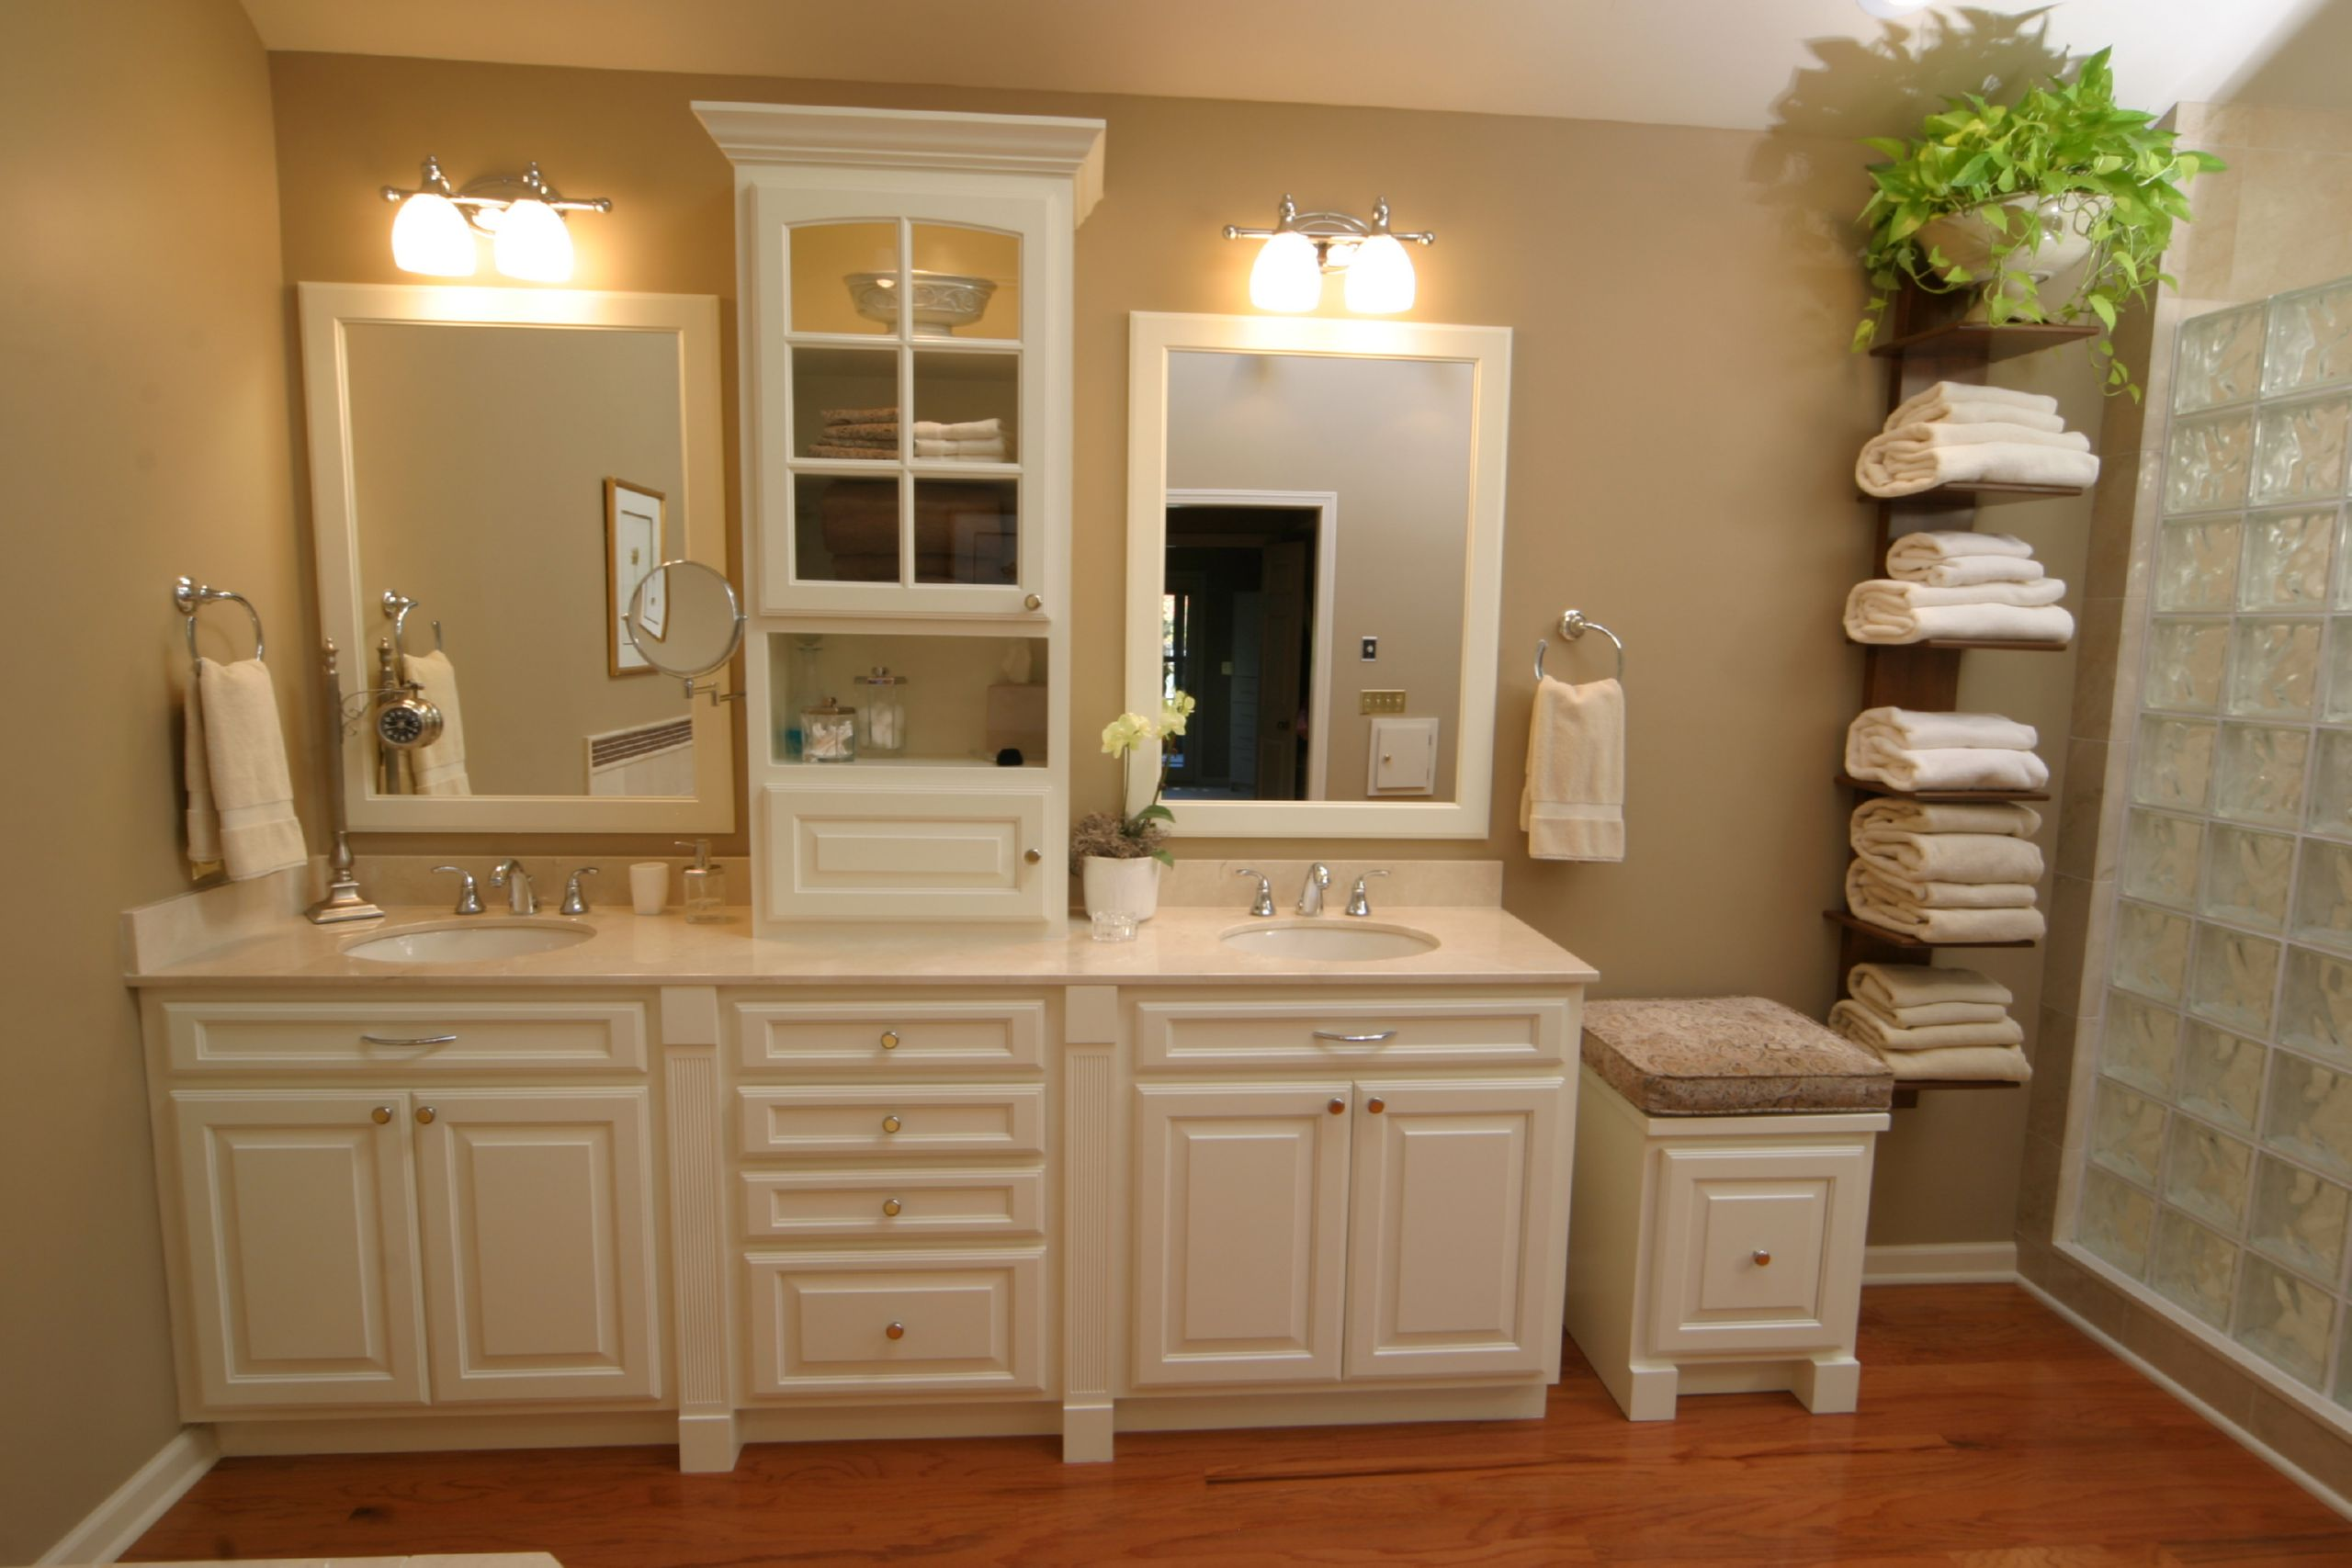 bathroomremodel a bathroom update to raise the value of your home